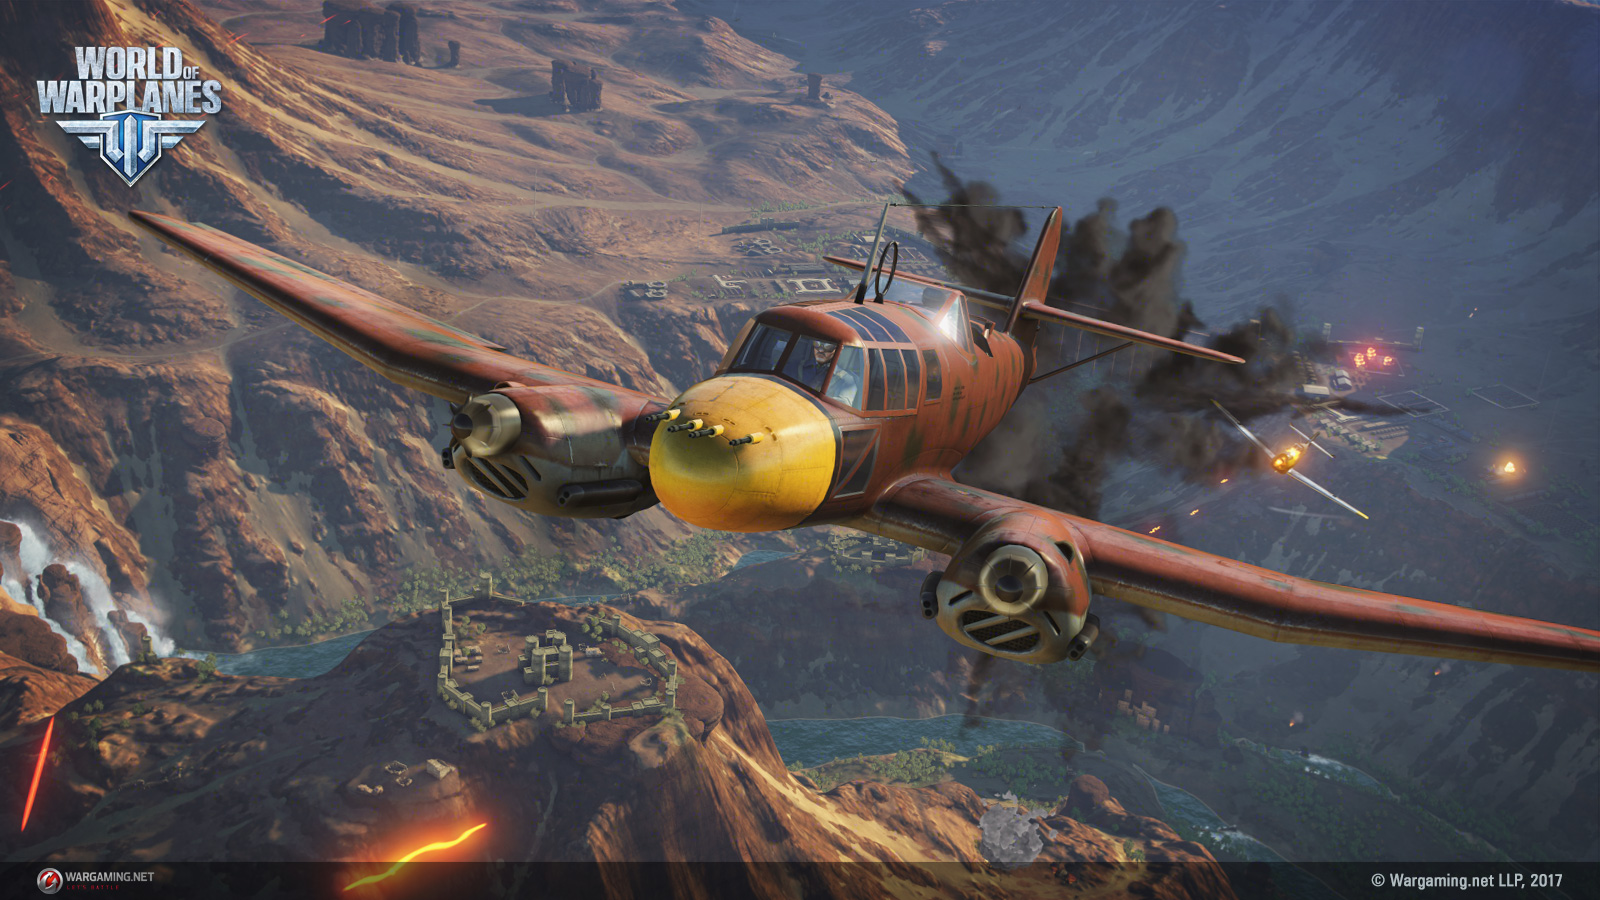 World of Warplanes. System requirements, minimum and not very